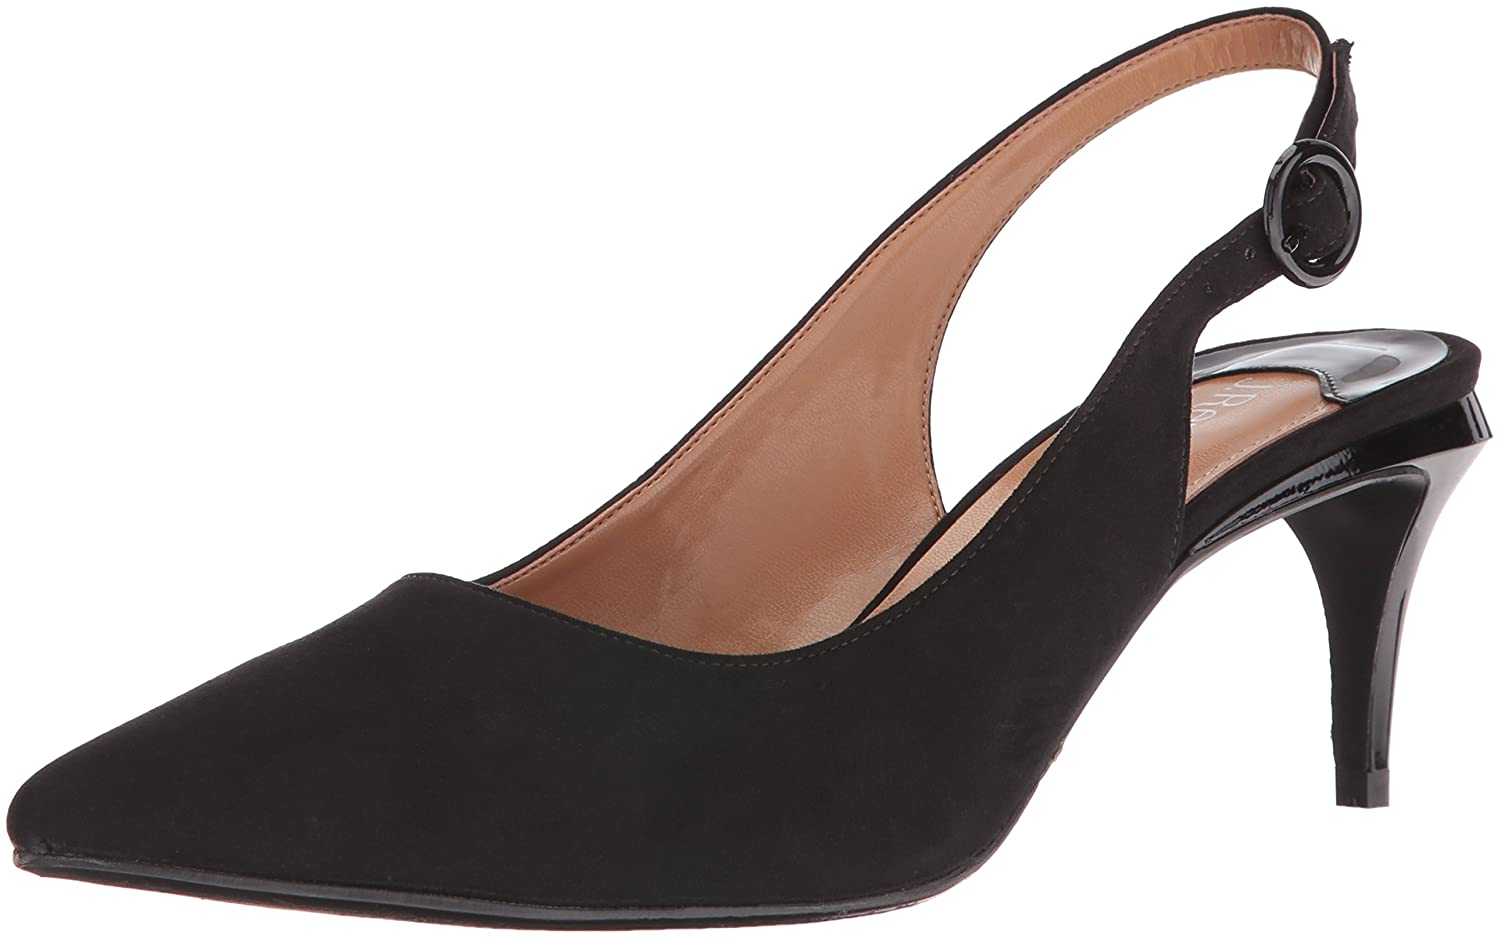 J.Renee Women's Pearla Dress Pump B01INJOLLI 10.5 B(M) US|Black Suede